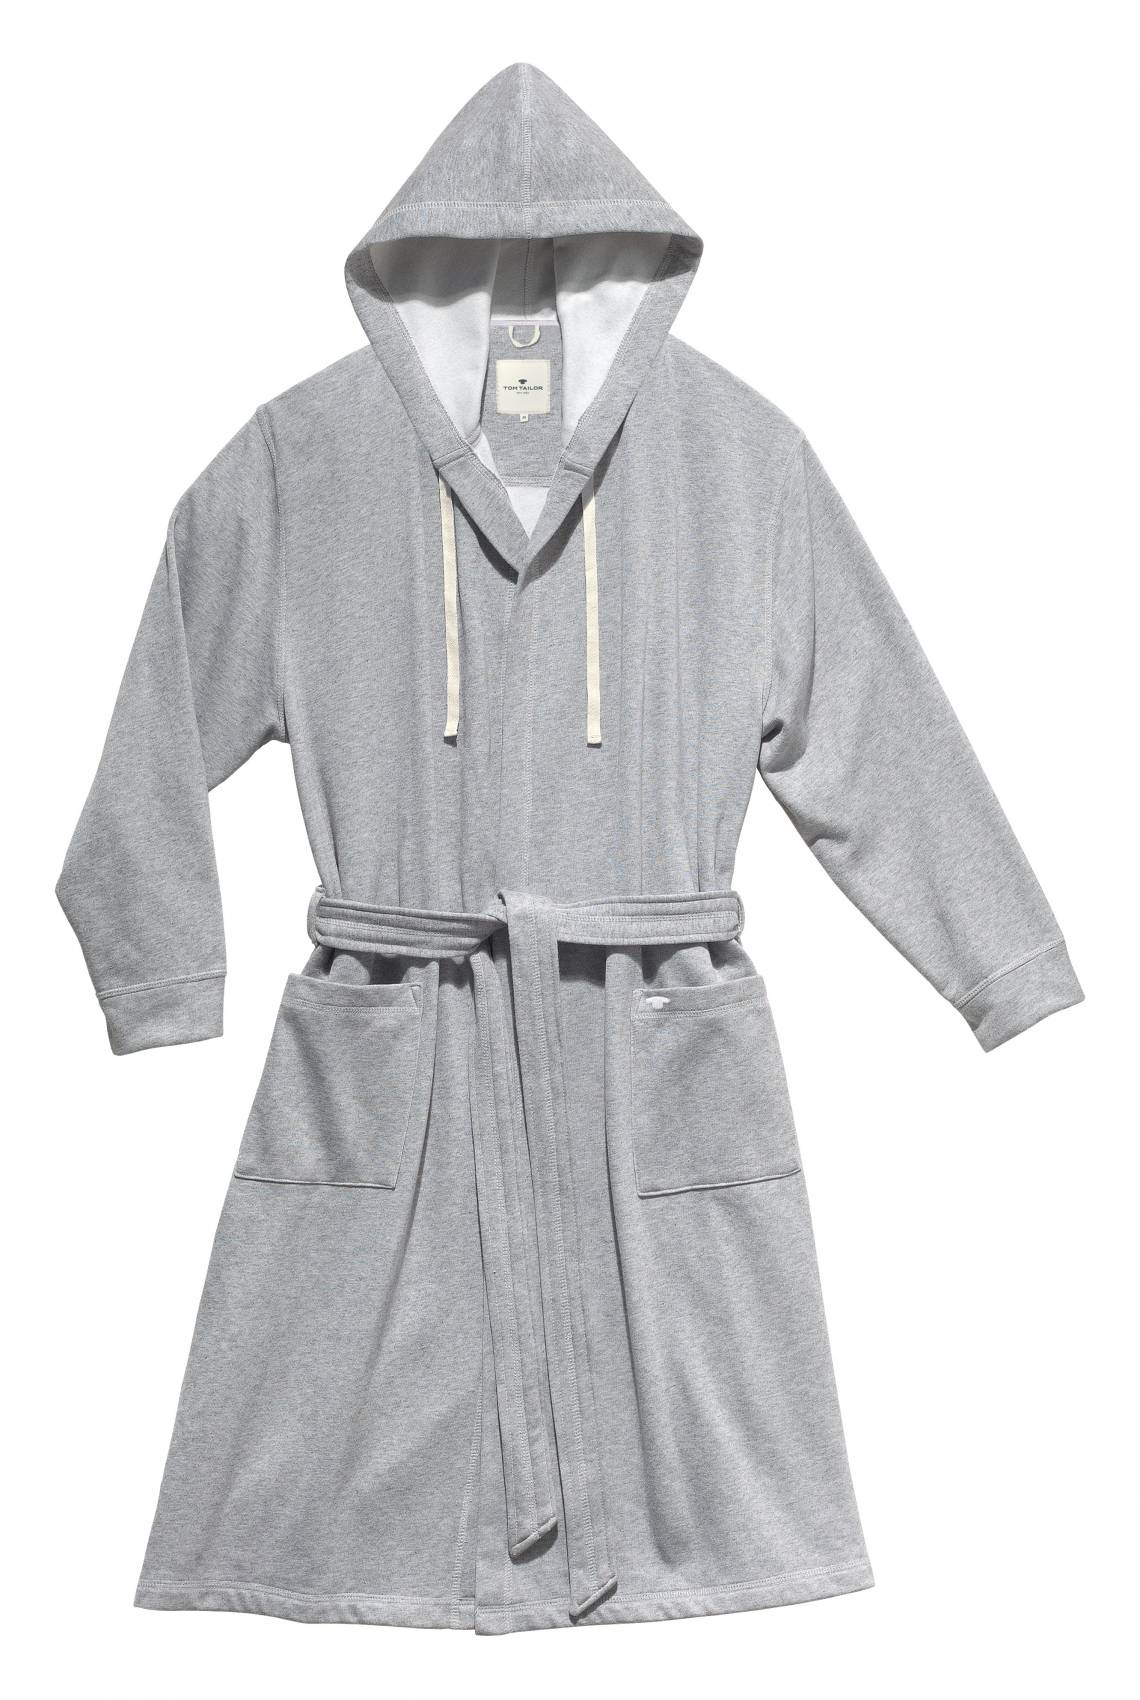 Tom Tailor BADEMANTEL MELANGE BATHROBE / 100 504 901